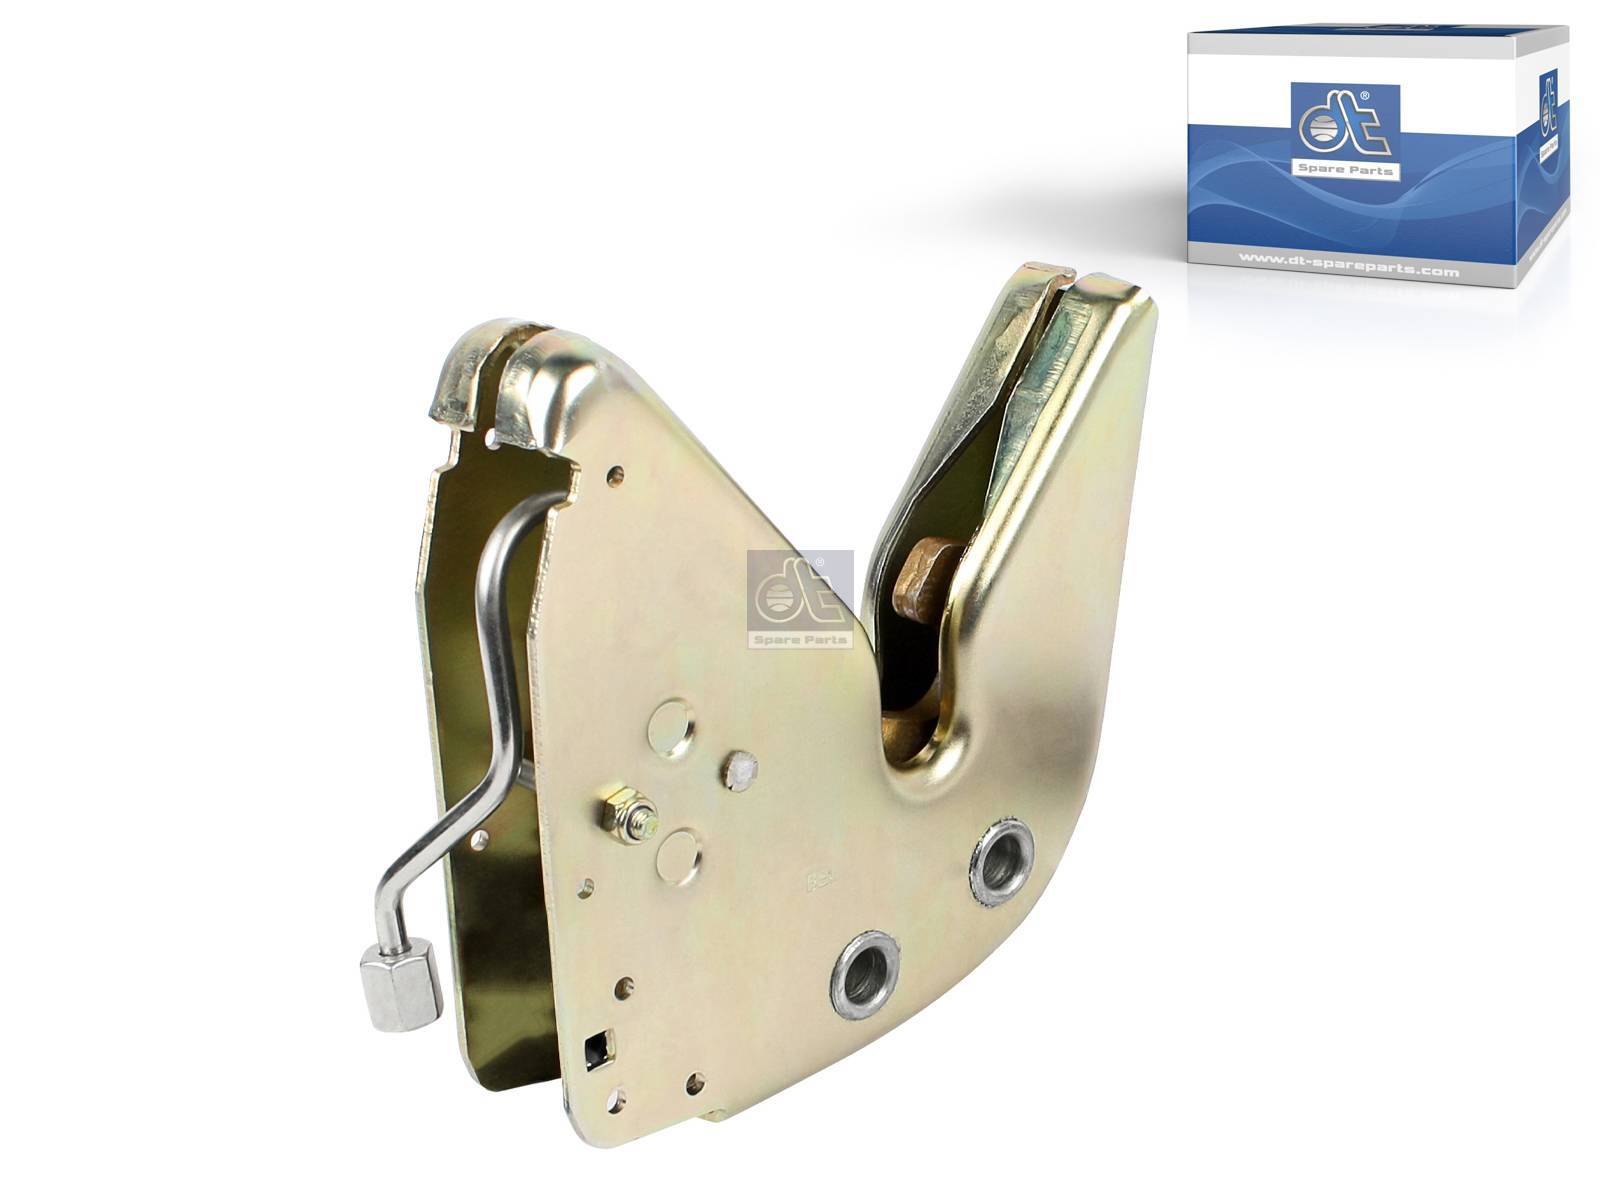 Cabin lock, without sensor